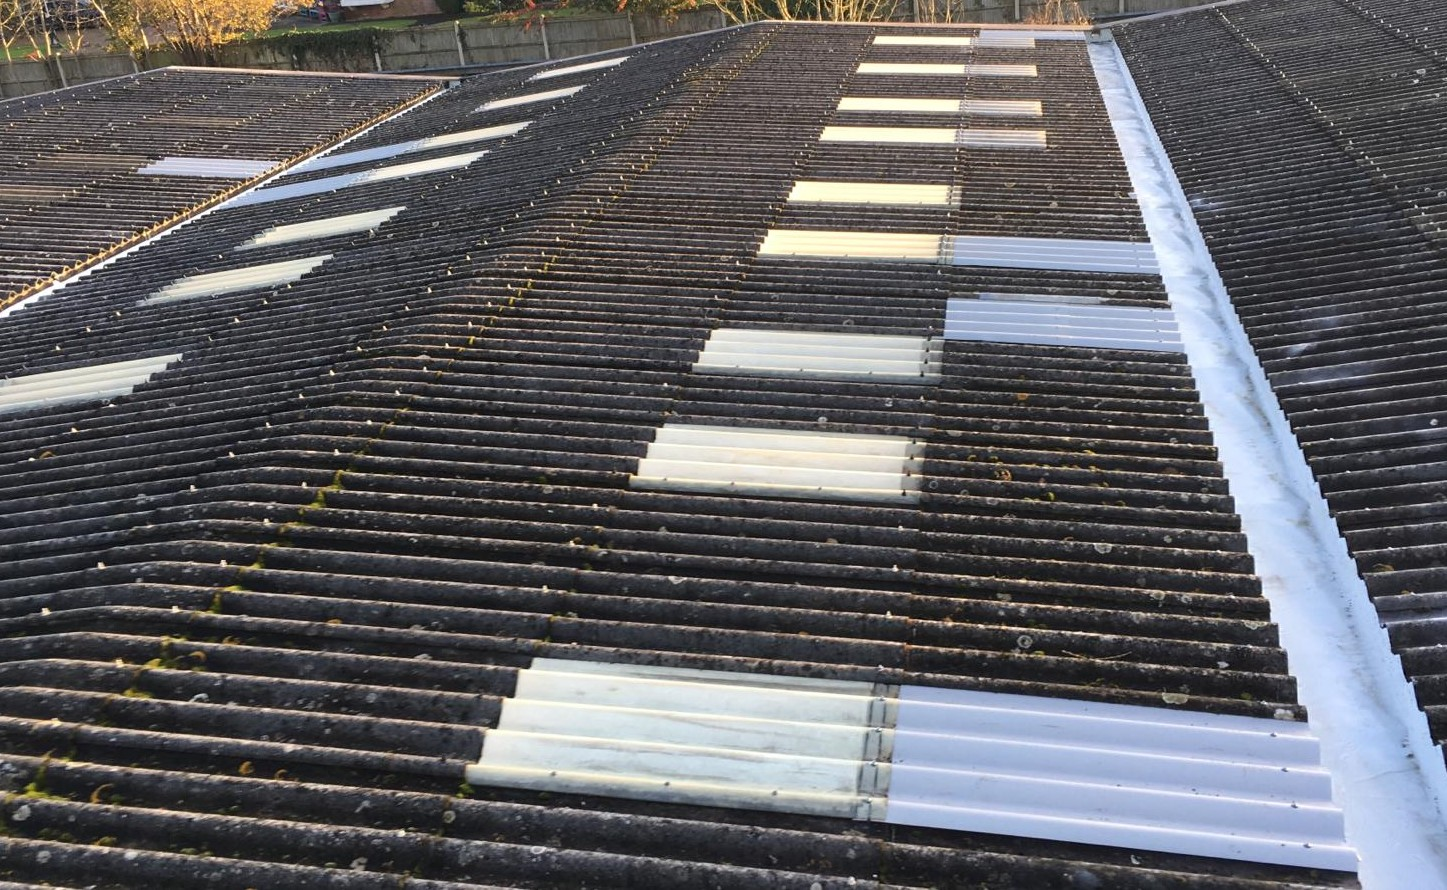 Repair to the Gutters and Roof on an Office Warehouse Roof in Edenbridge, Kent 4